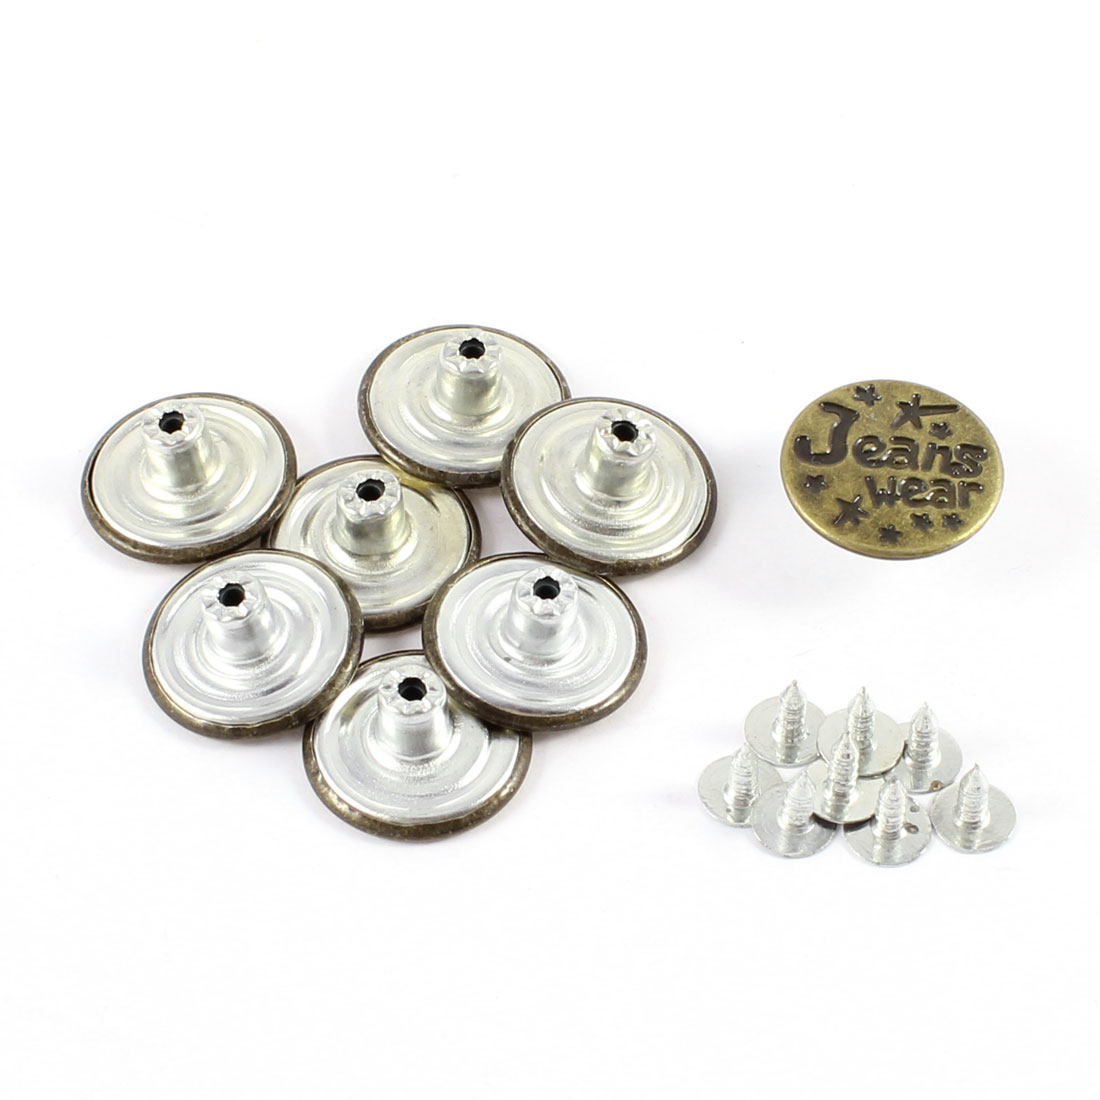 8 Pcs Replacing Part English Words Accent Round Jeans Buttons Copper Tone